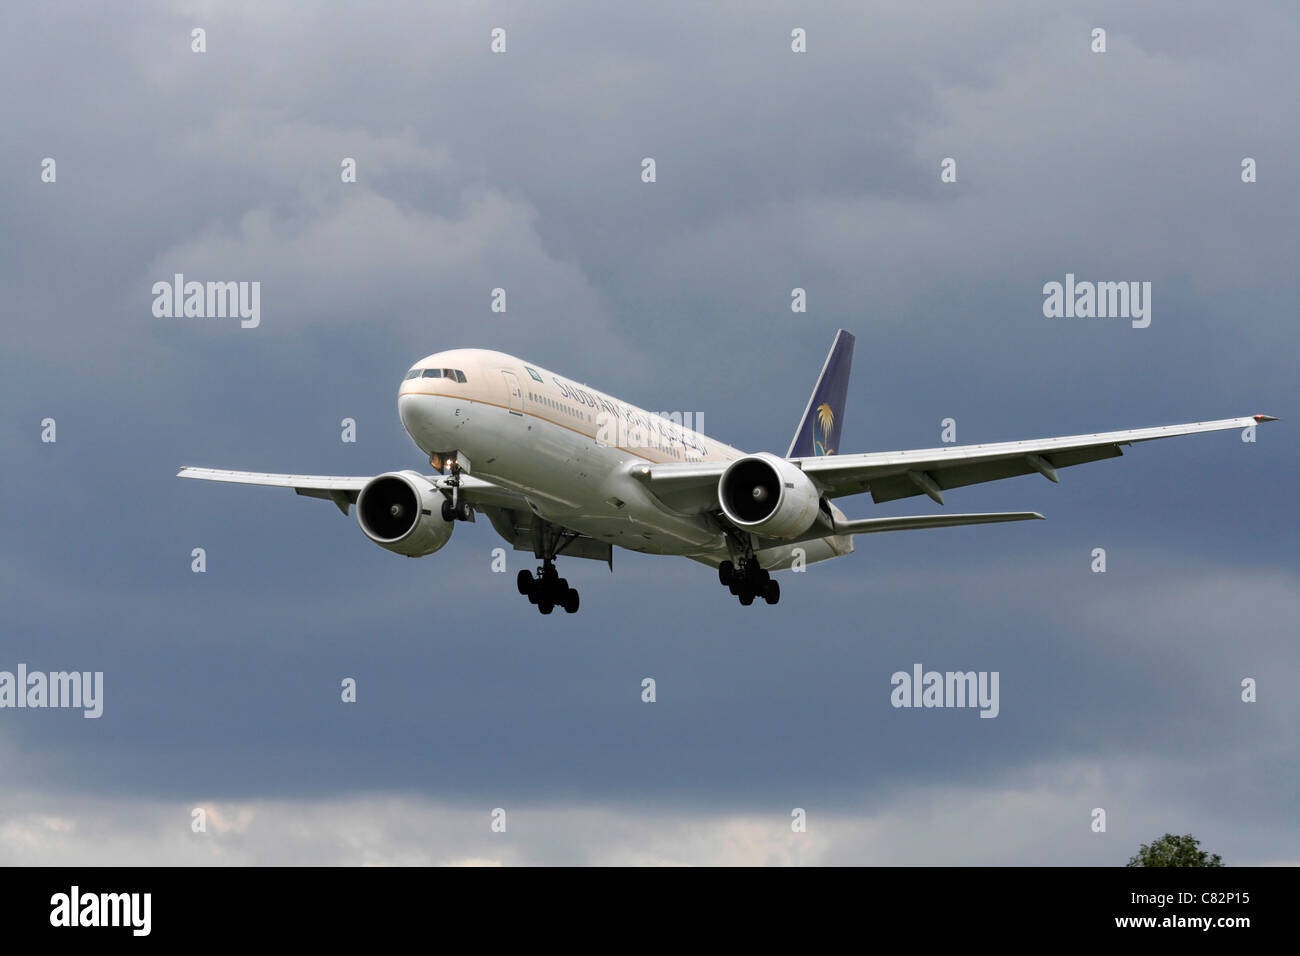 Saudi Arabian Airlines Boeing 777-200ER on final approach - Stock Image